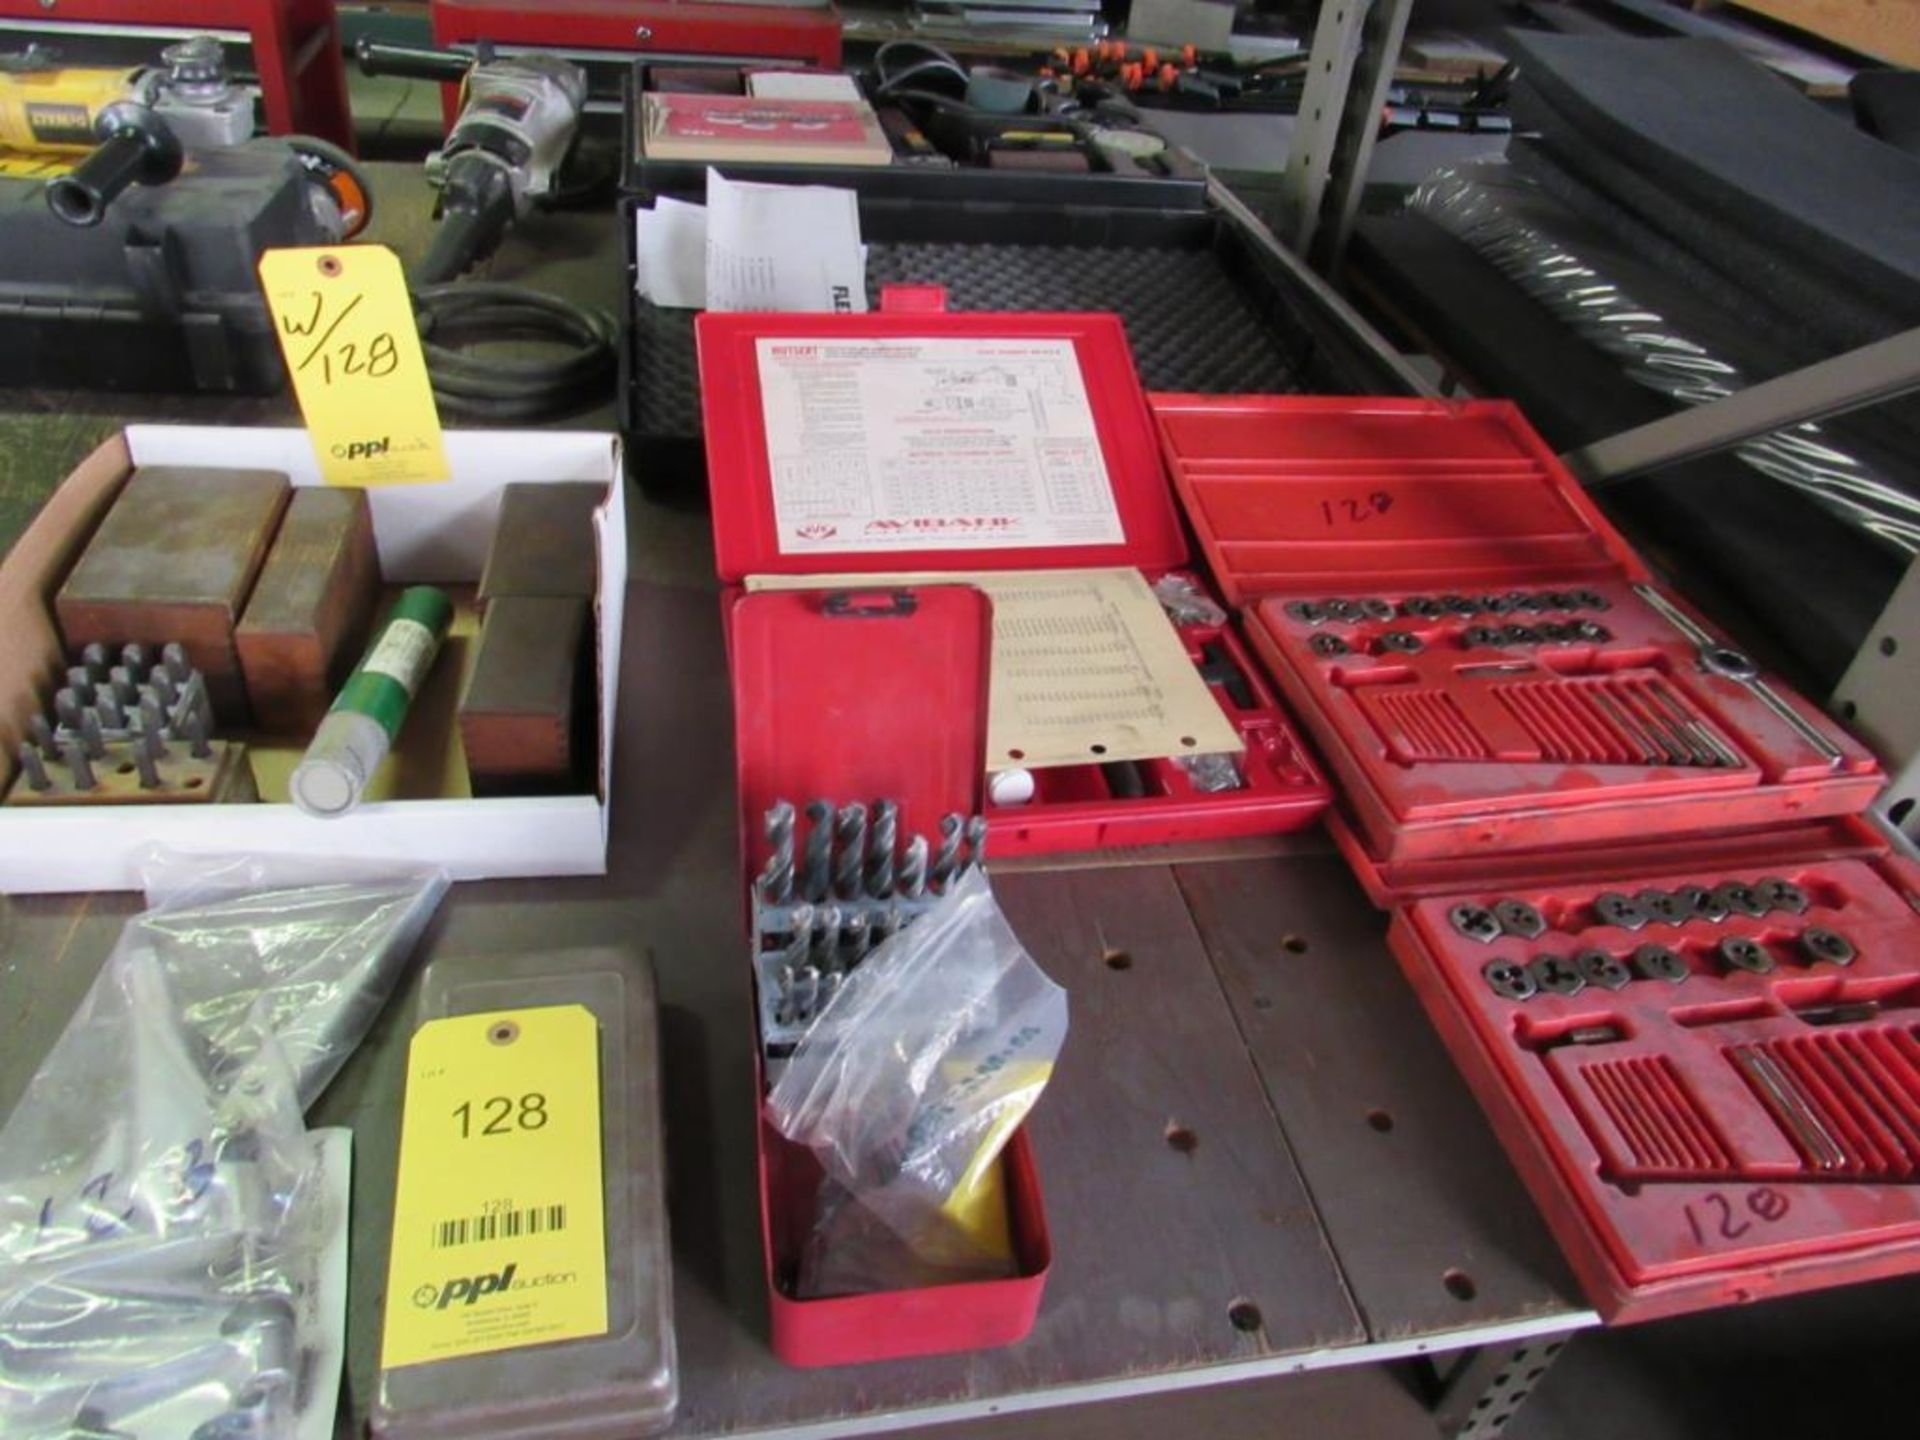 Lot 128 - LOT: (2) Assorted Hand Punches, Assorted Letter & Number Stamps, Drill Index, Nutsert Set, (2) Parti